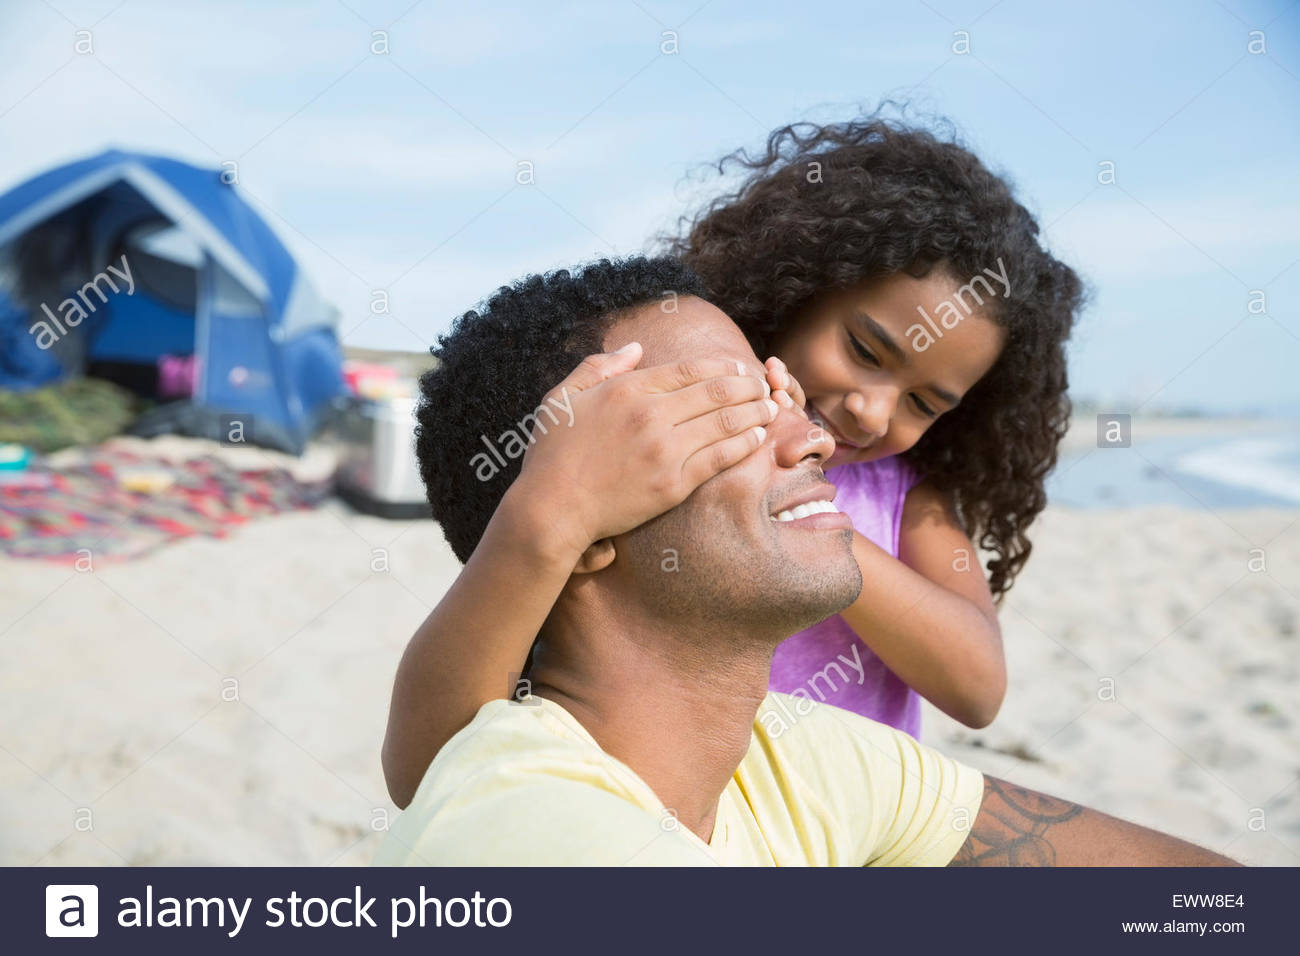 Daughter covering father eyes on beach - Stock Image